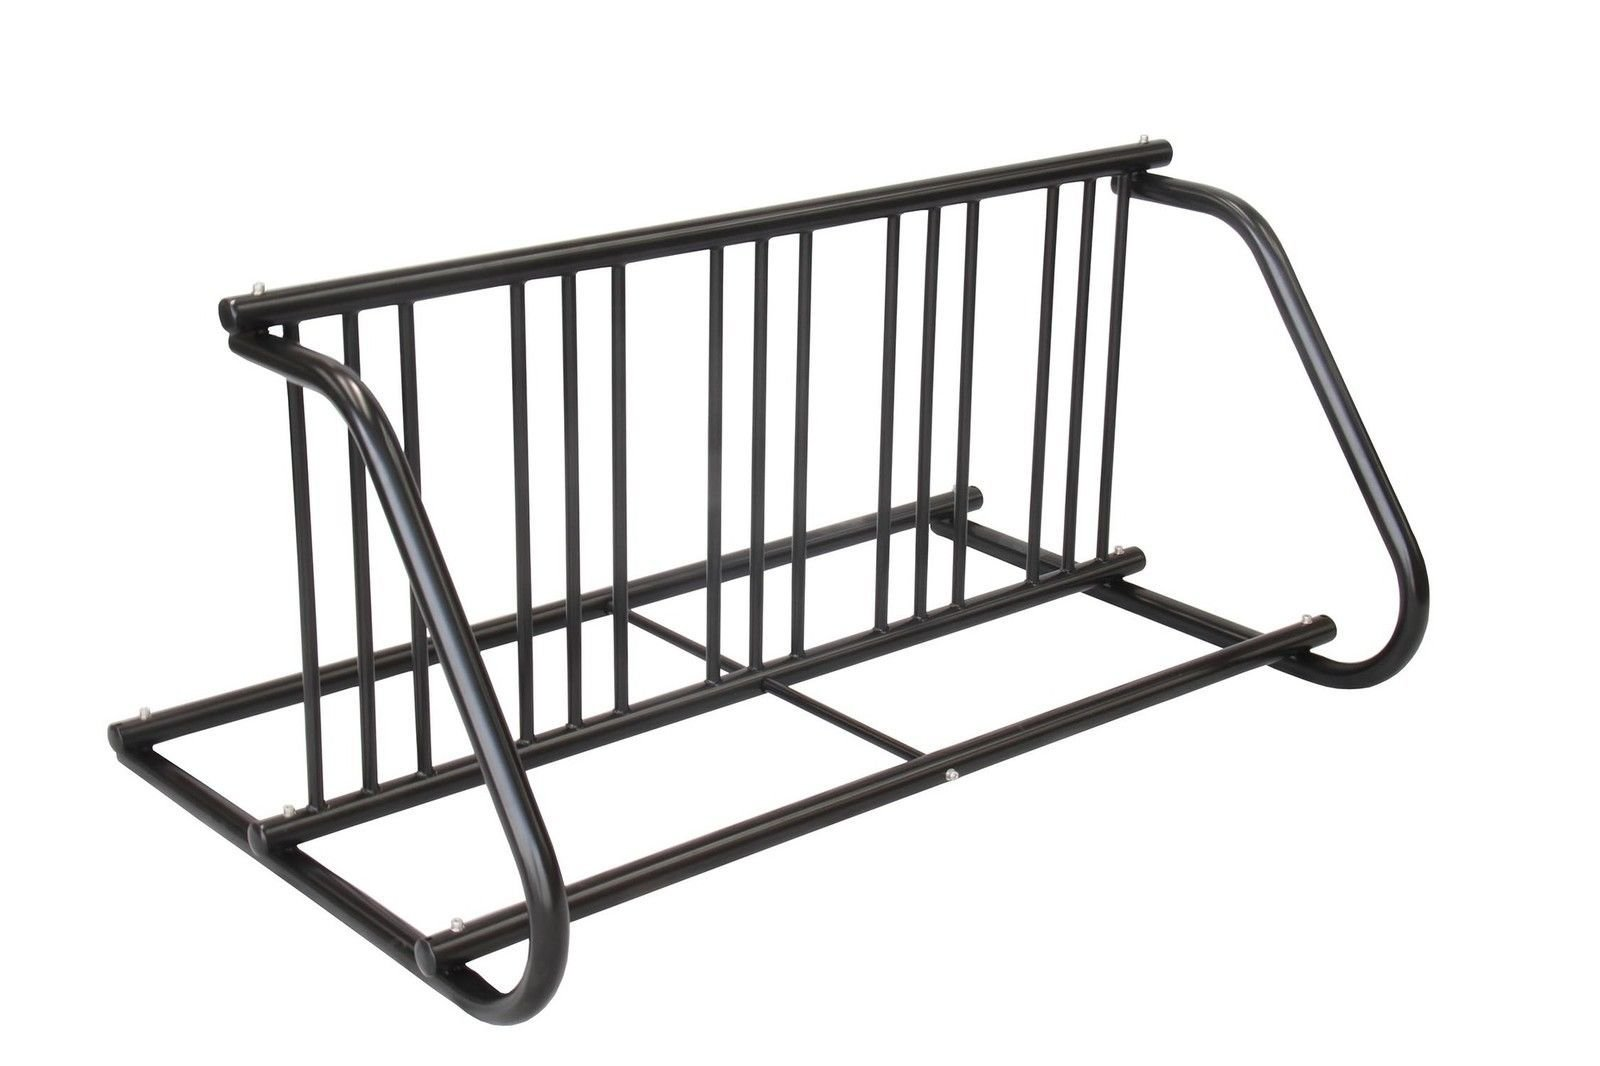 5-10 Bike Racks Bicycle Parking Stand Indoor Outdoor powder coating by CyclingDeal (Image #1)